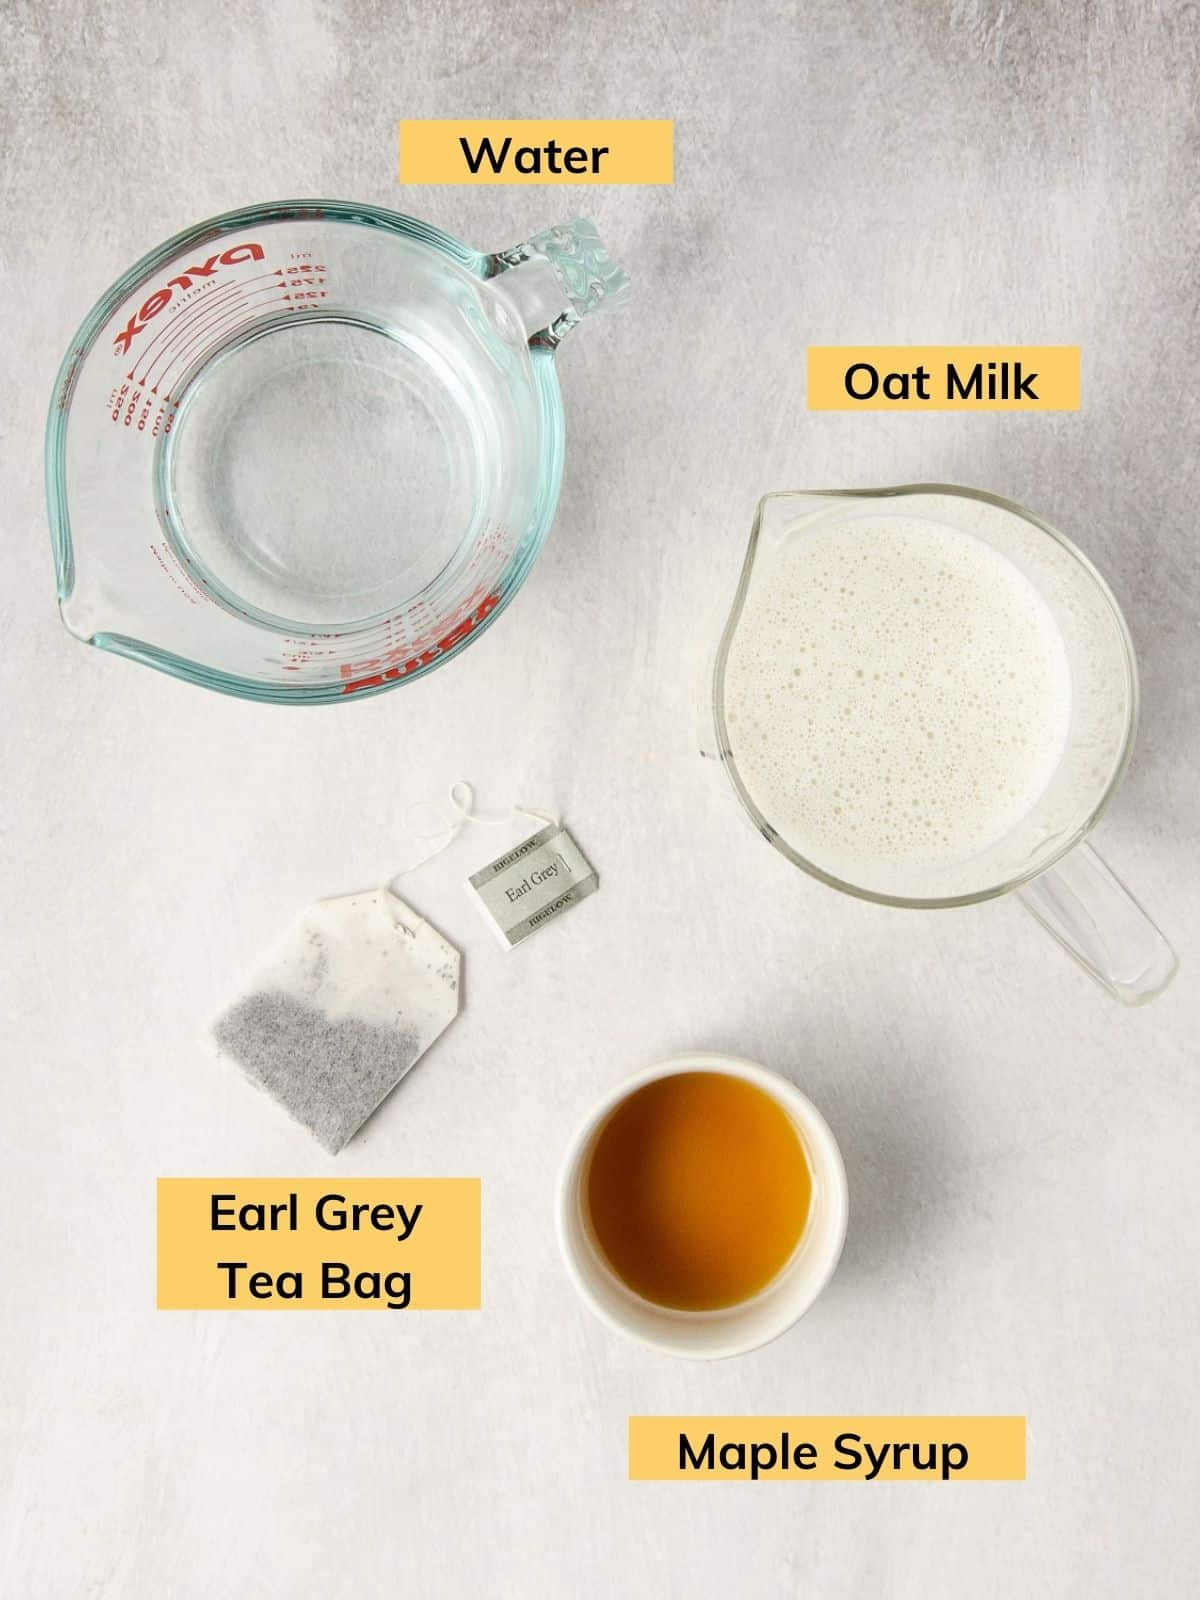 The ingredients for a london tea fog latte all in little containers.